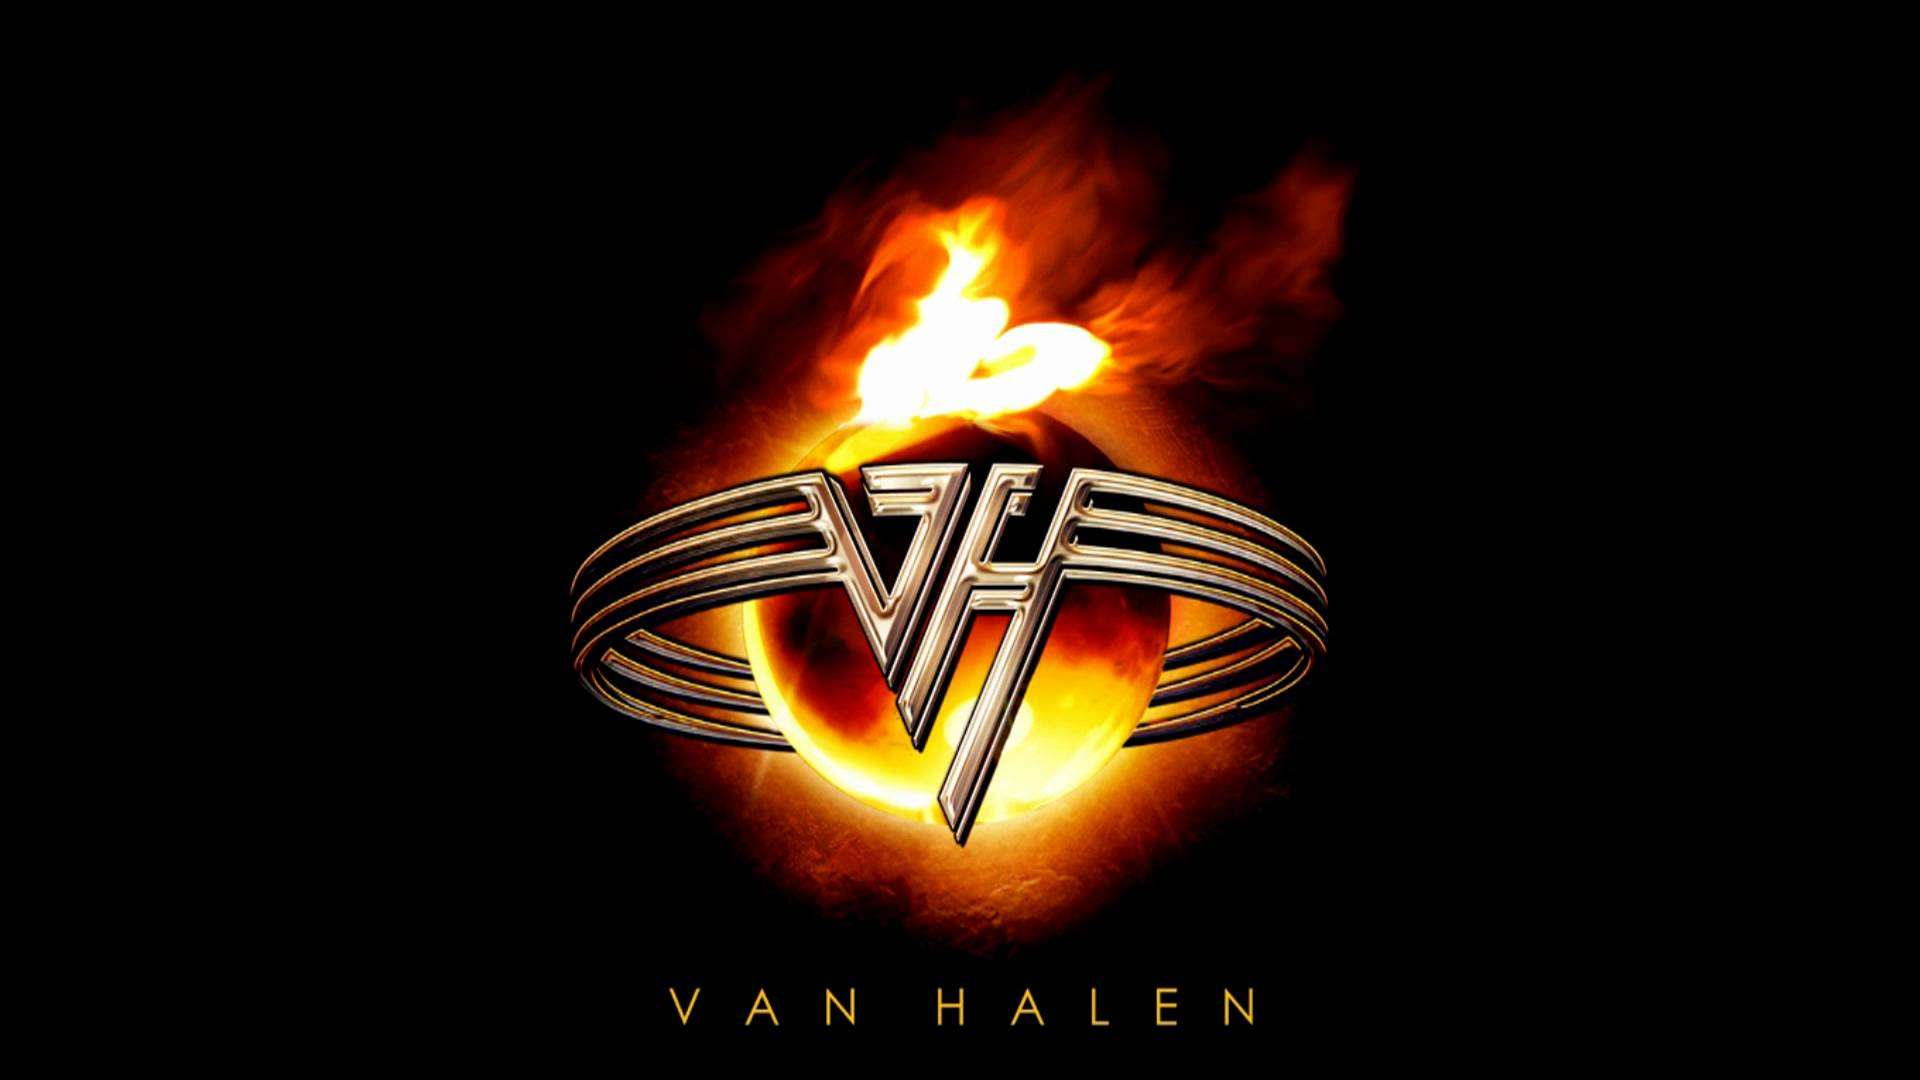 Van Halen - Aint Talkin' Bout Love - YouTube